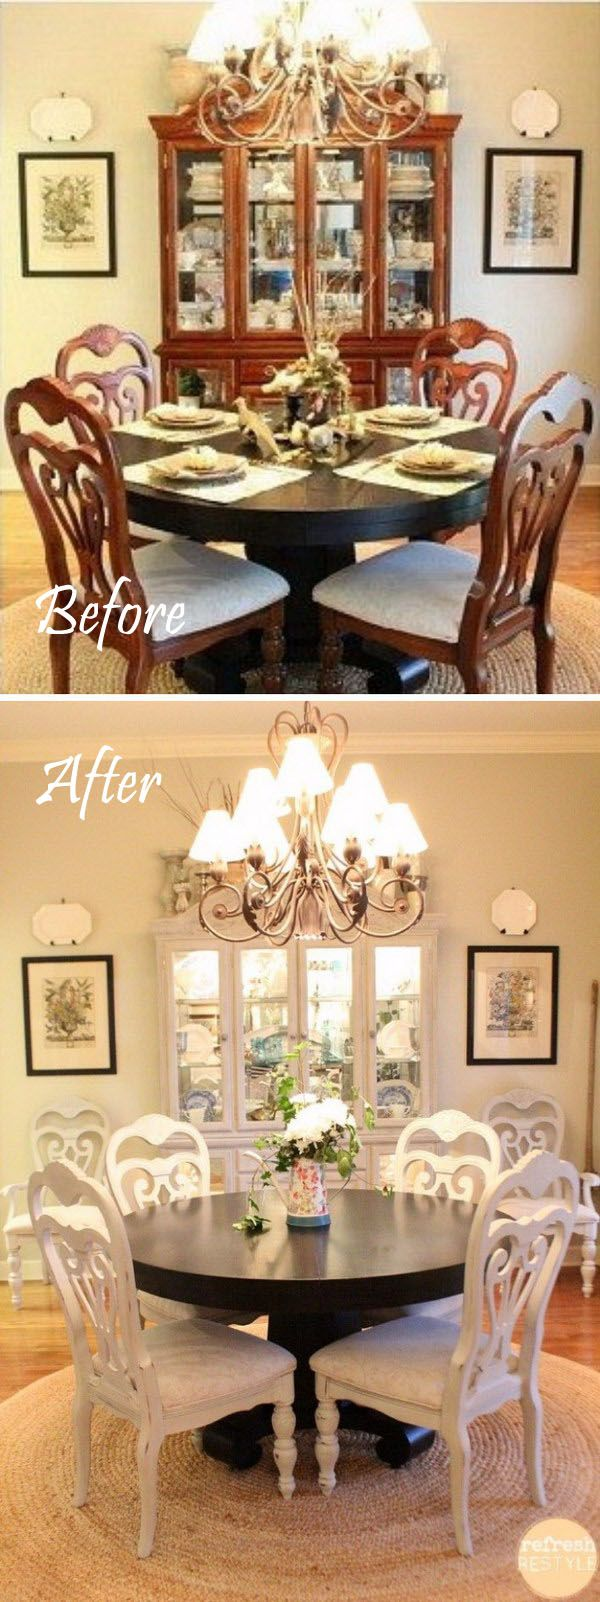 25 Best Ideas About Dining Room Makeovers On Pinterest Diy Dining Room Paint Diy House Furniture And Chair Makeover